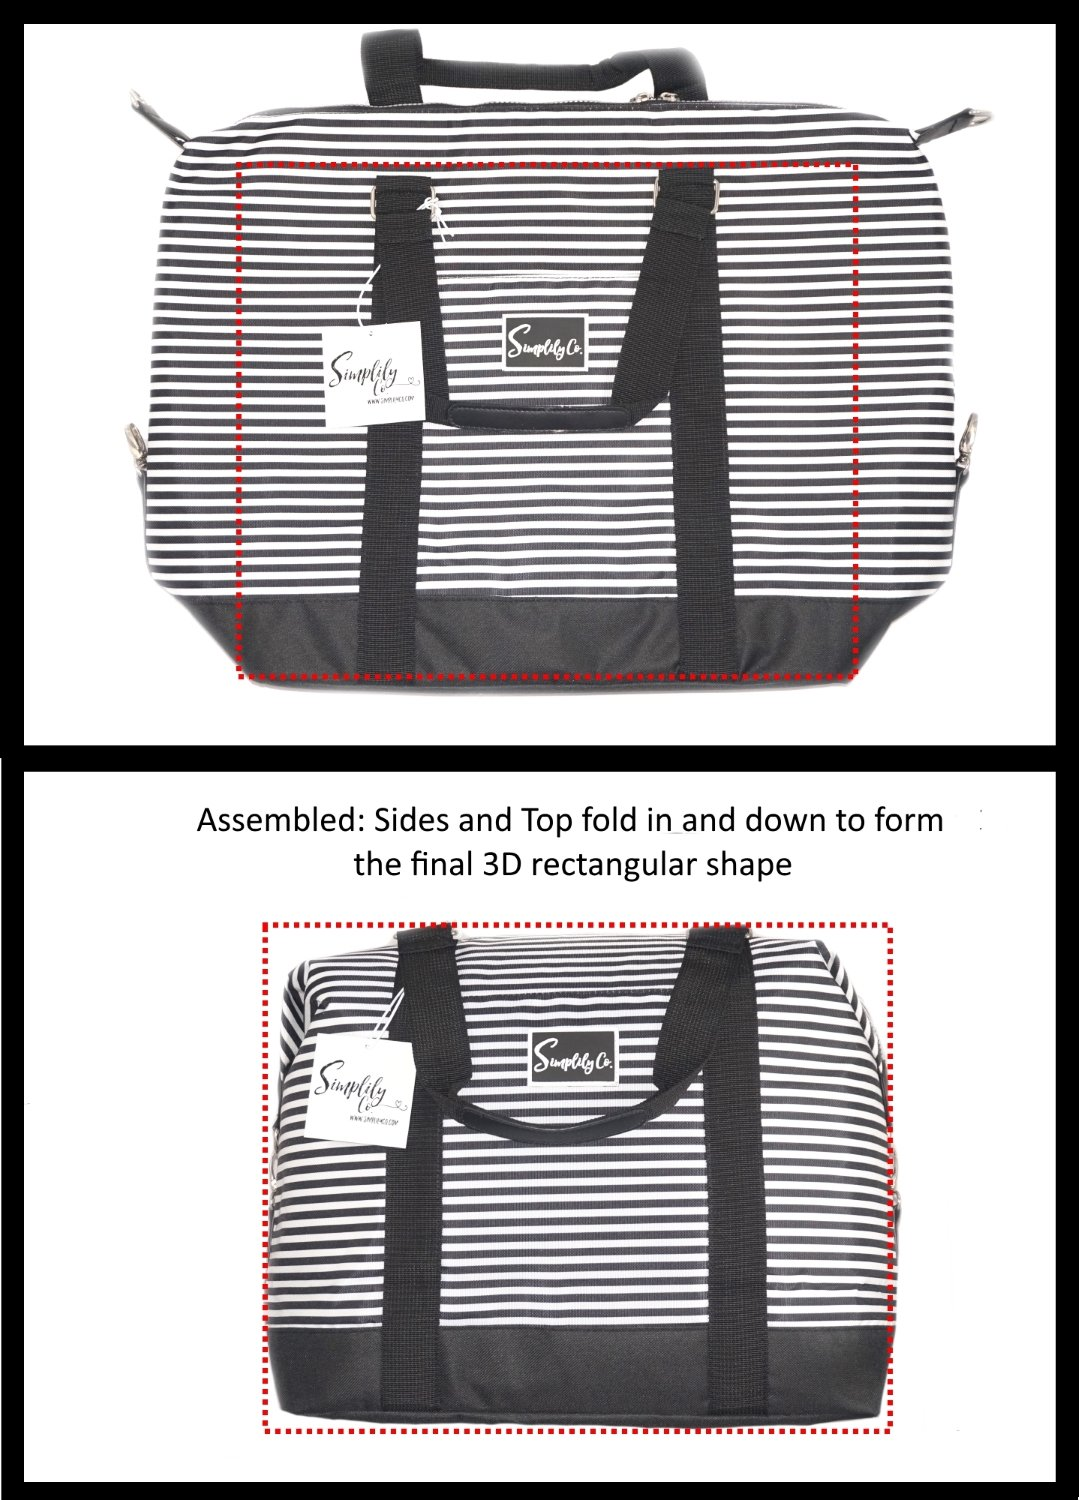 Travel Weekender Overnight Carry-on Under the Seat Shoulder Tote Bag (Small, Black & White Polka Dot) by Simplily Co. (Image #8)